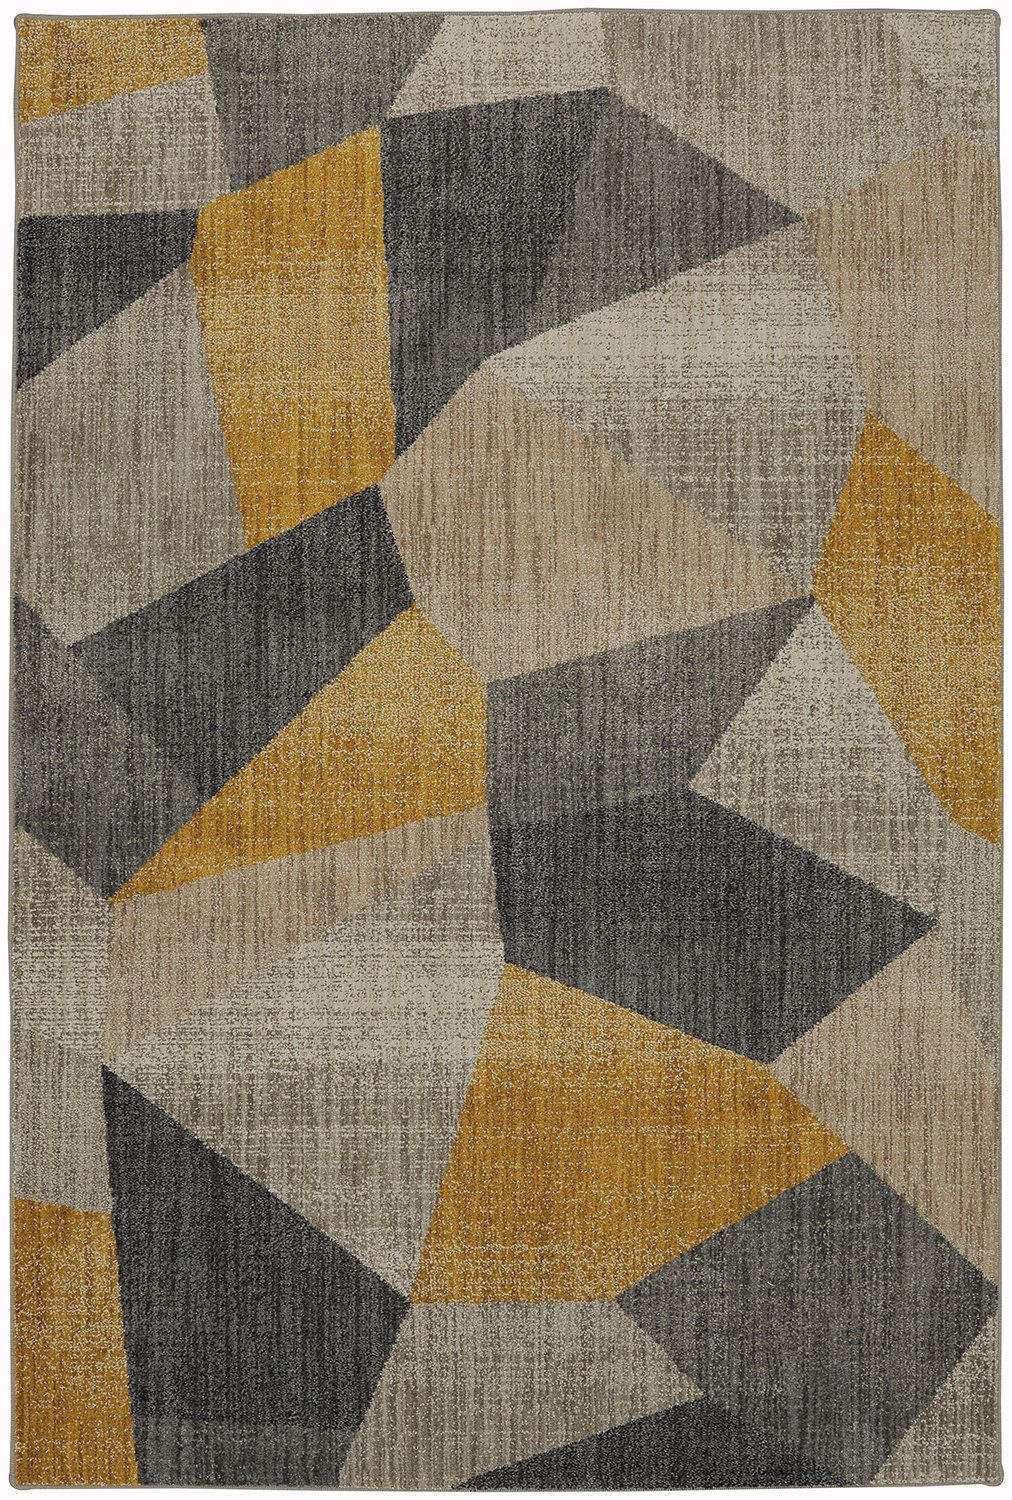 Metropolitan Gray Black Yellow Area Rug Products Rugs Rugs In